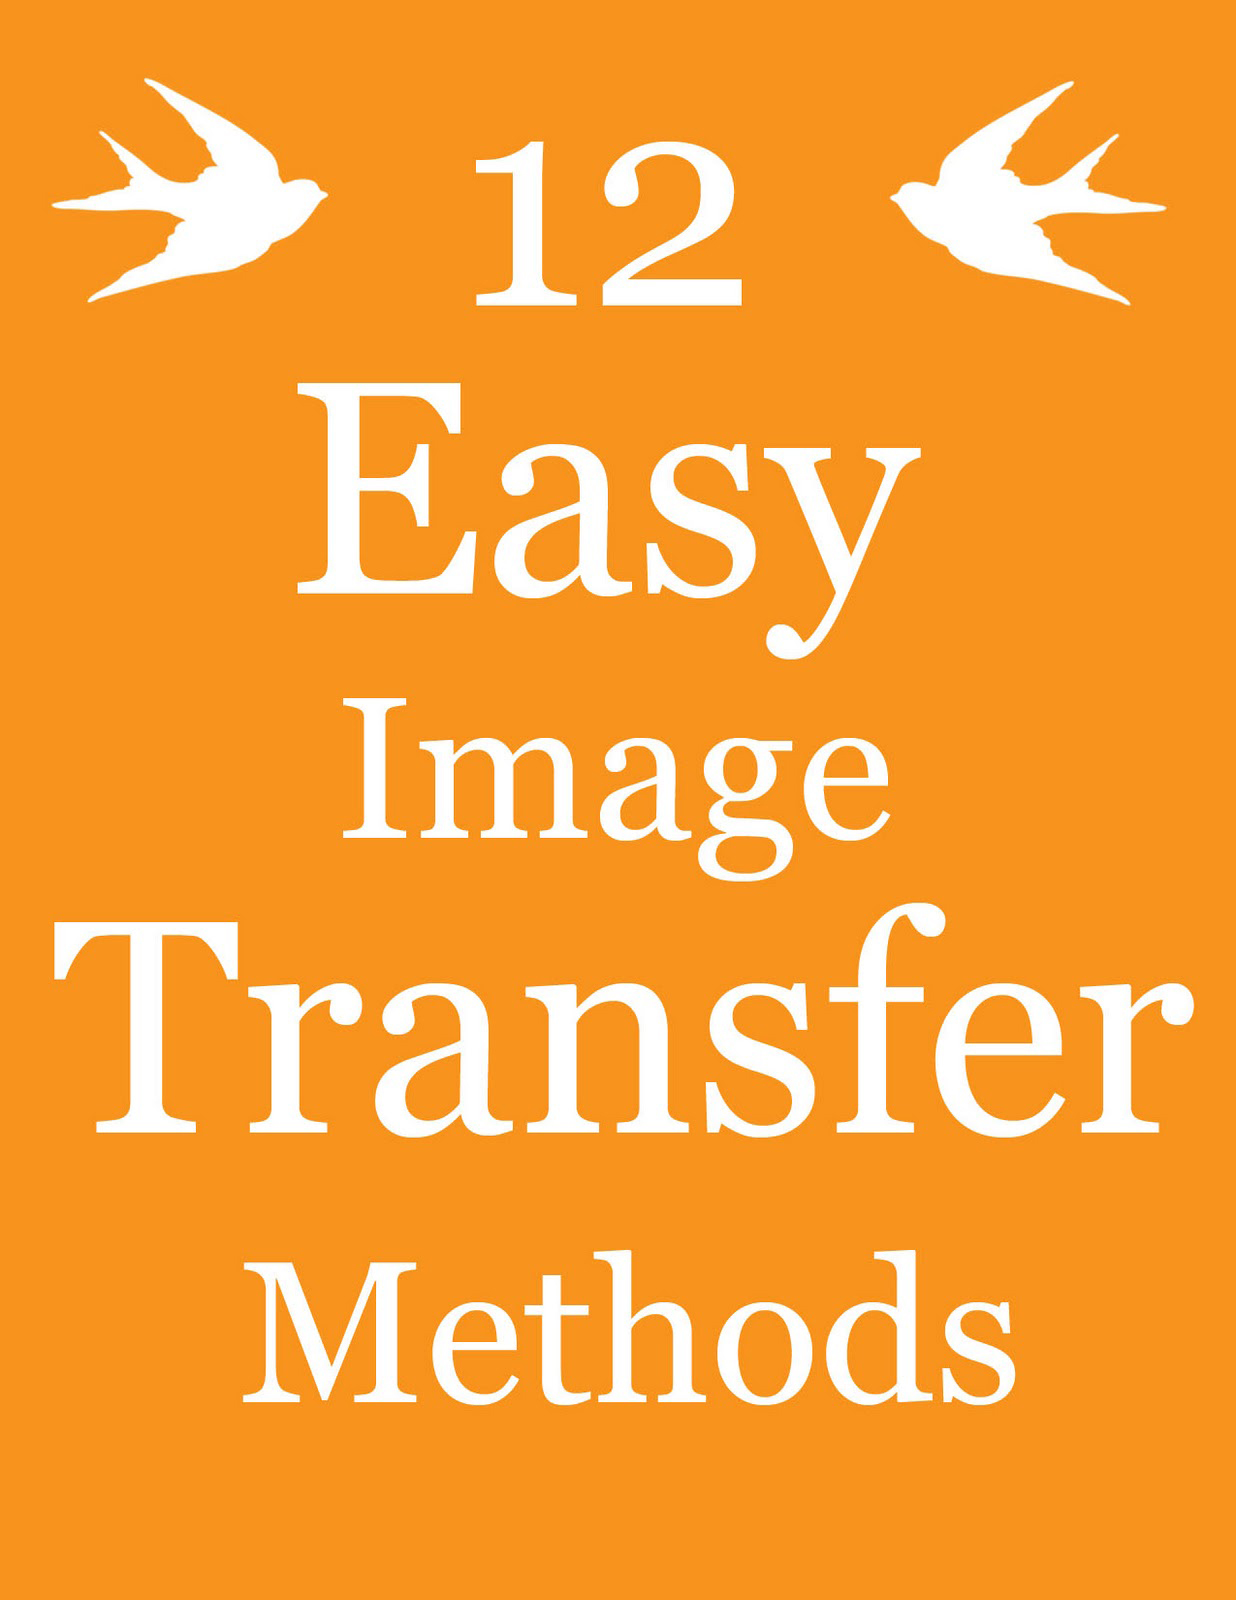 12 easy image transfer methods for diy projects! - the